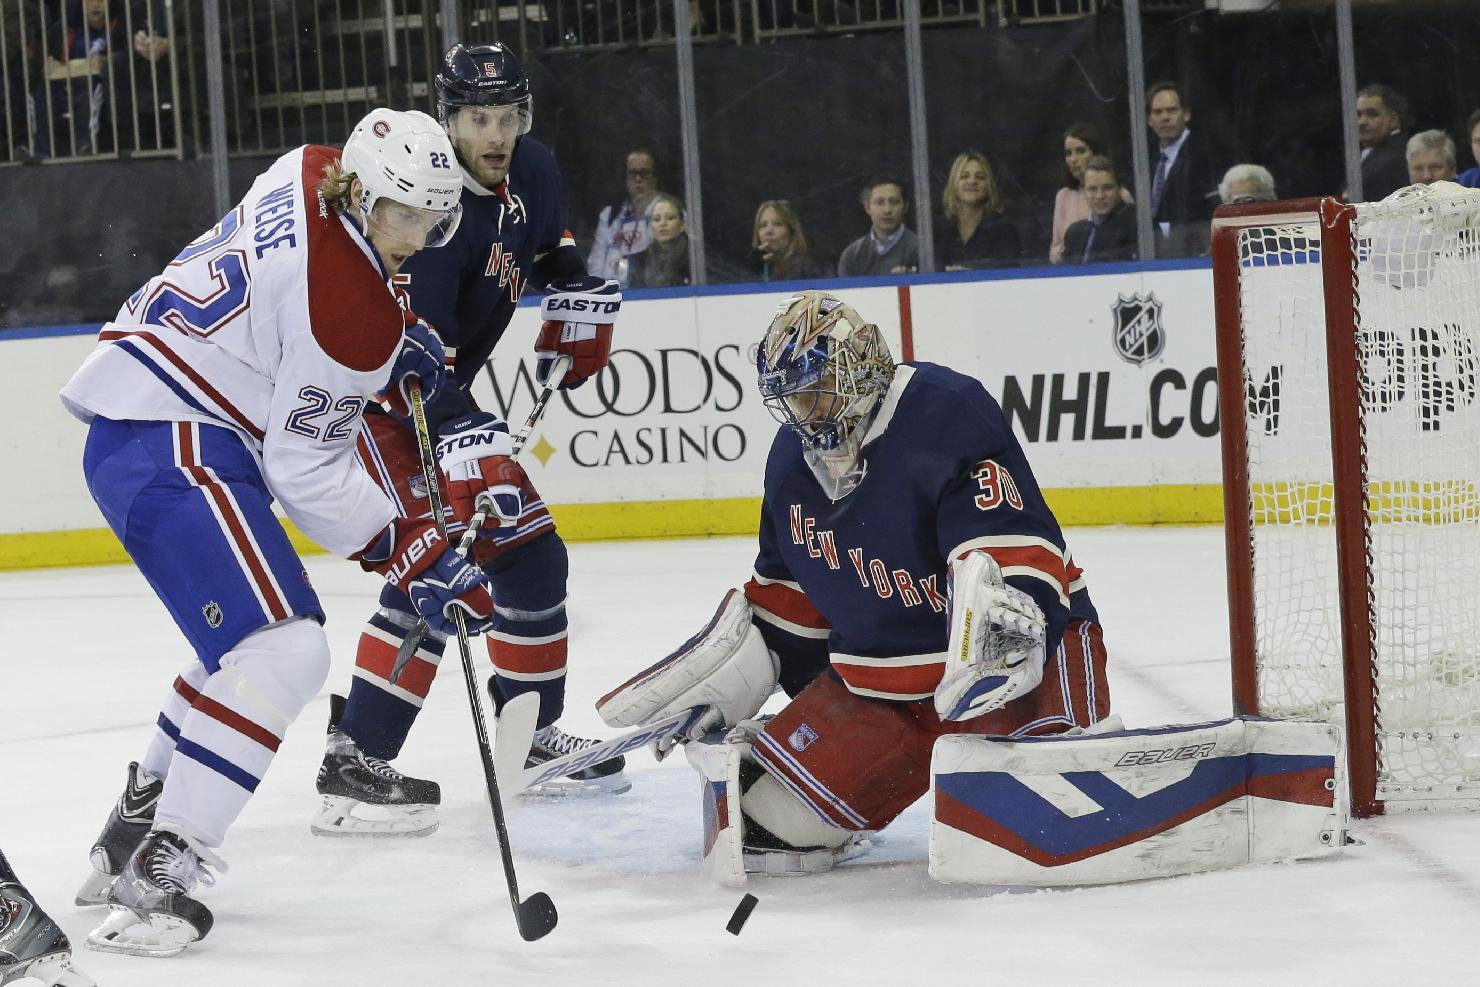 Rangers hit scoring slump, drop 2 straight after break